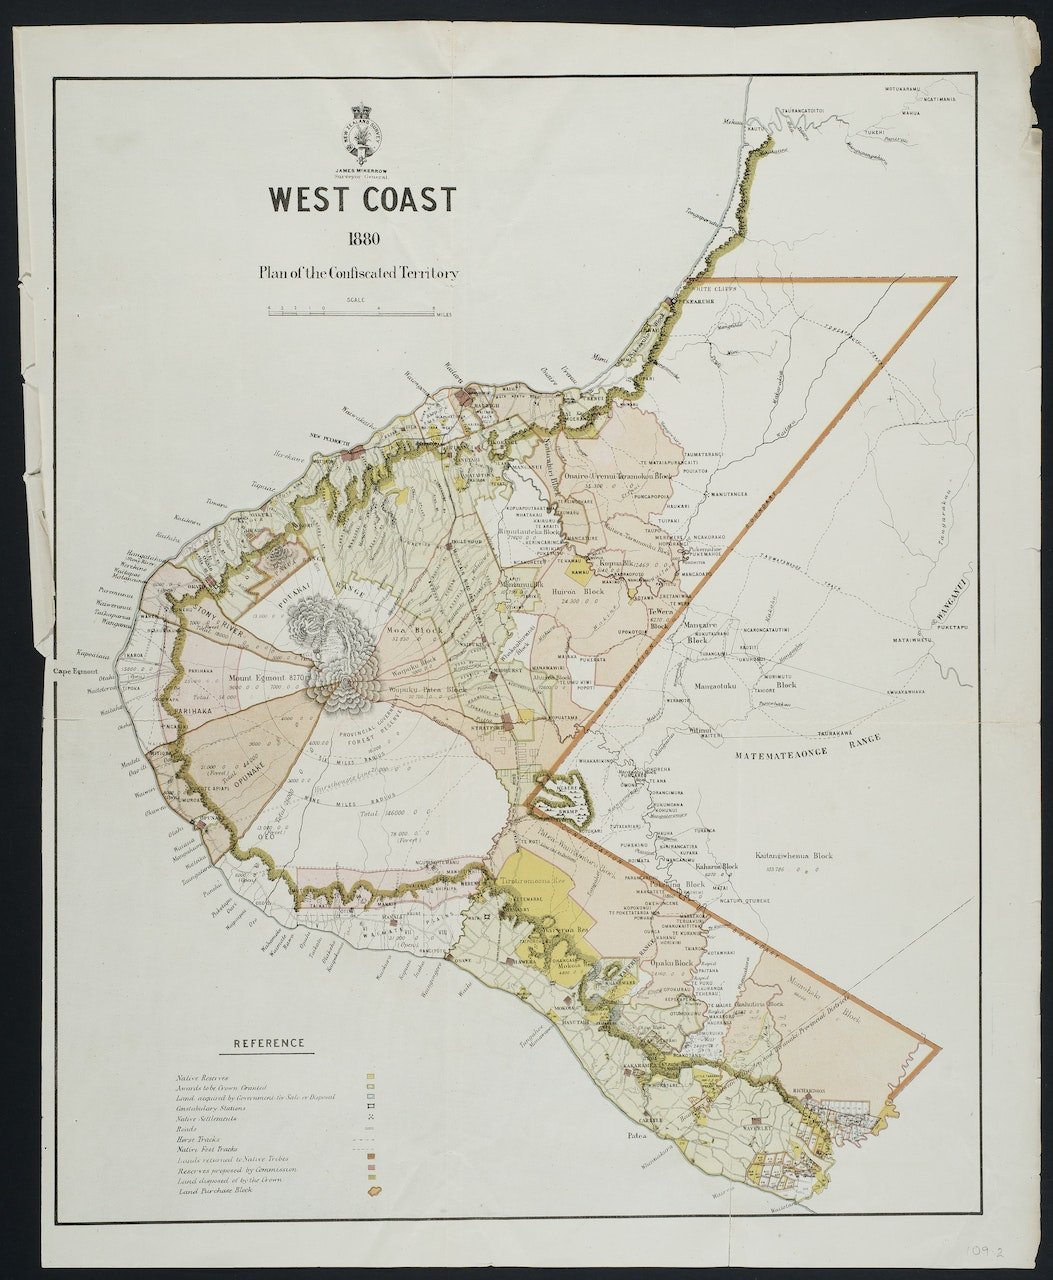 1880 map of the Taranaki coast showing the area of'confiscated' territory